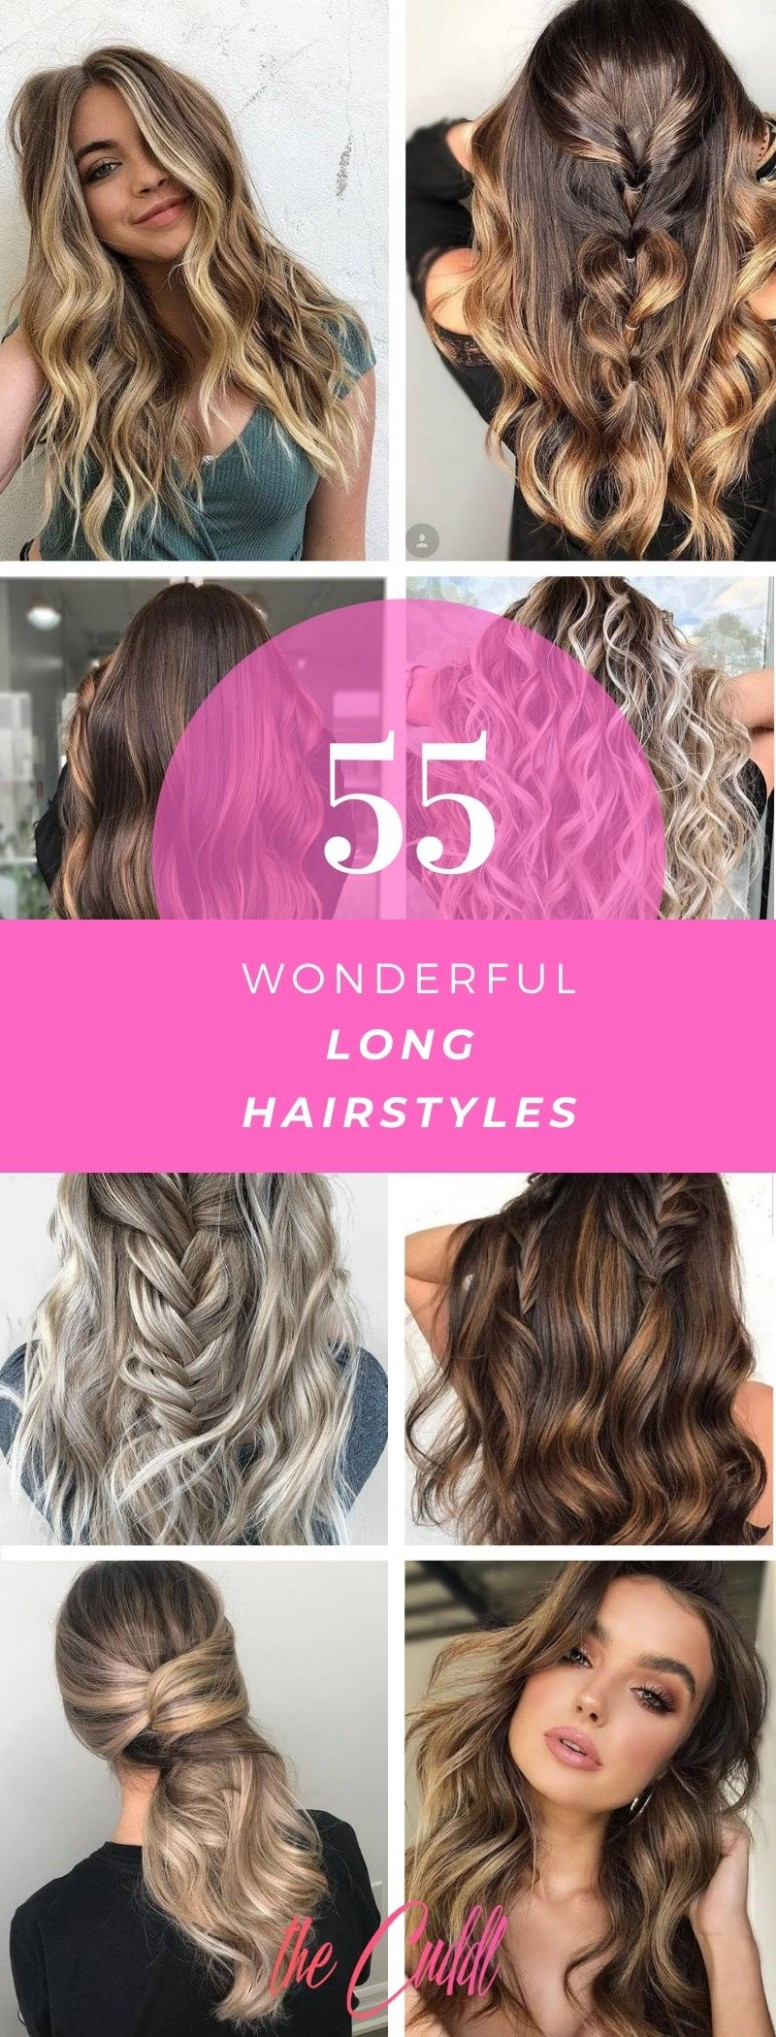 12 Insanely Hot Hairstyles For Long Hair That Will Wow You In 12 Fun Haircuts For Long Hair